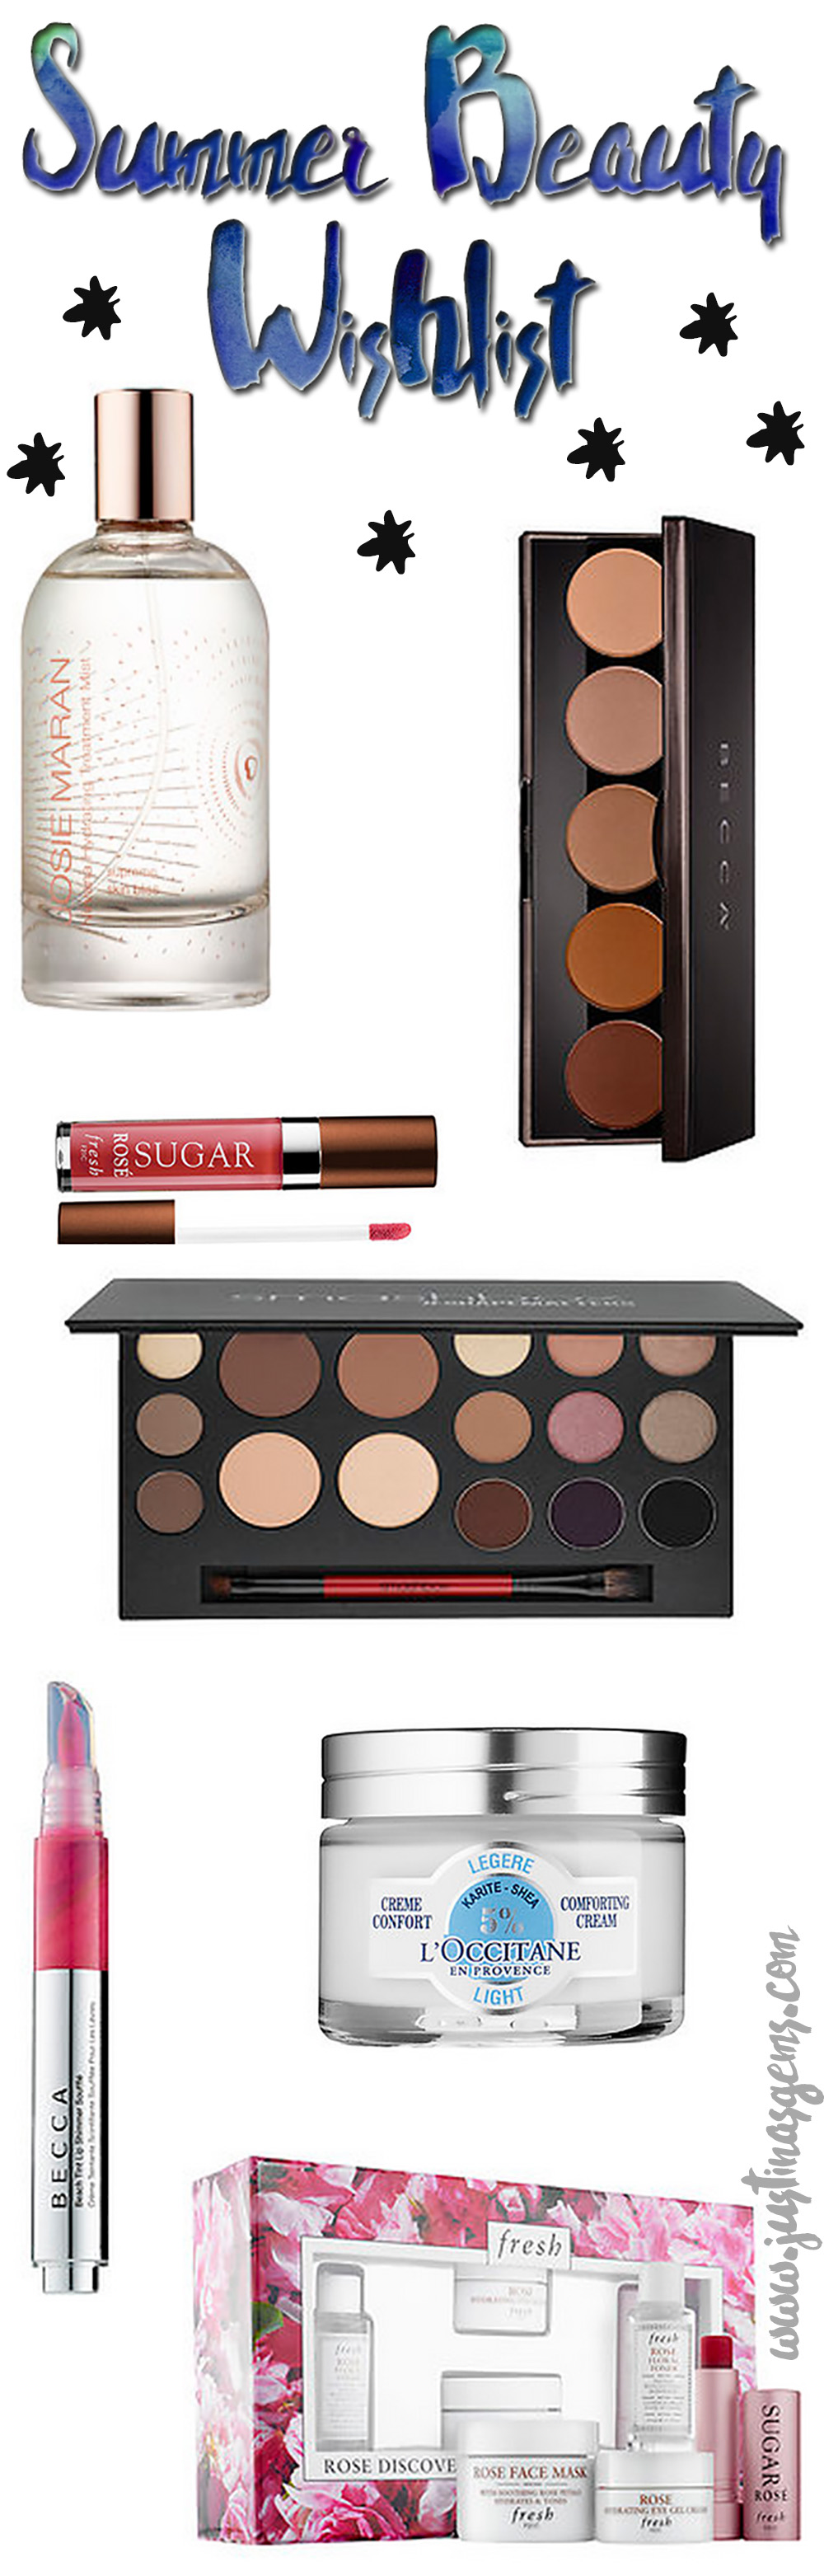 summer 2015 beauty wishlist